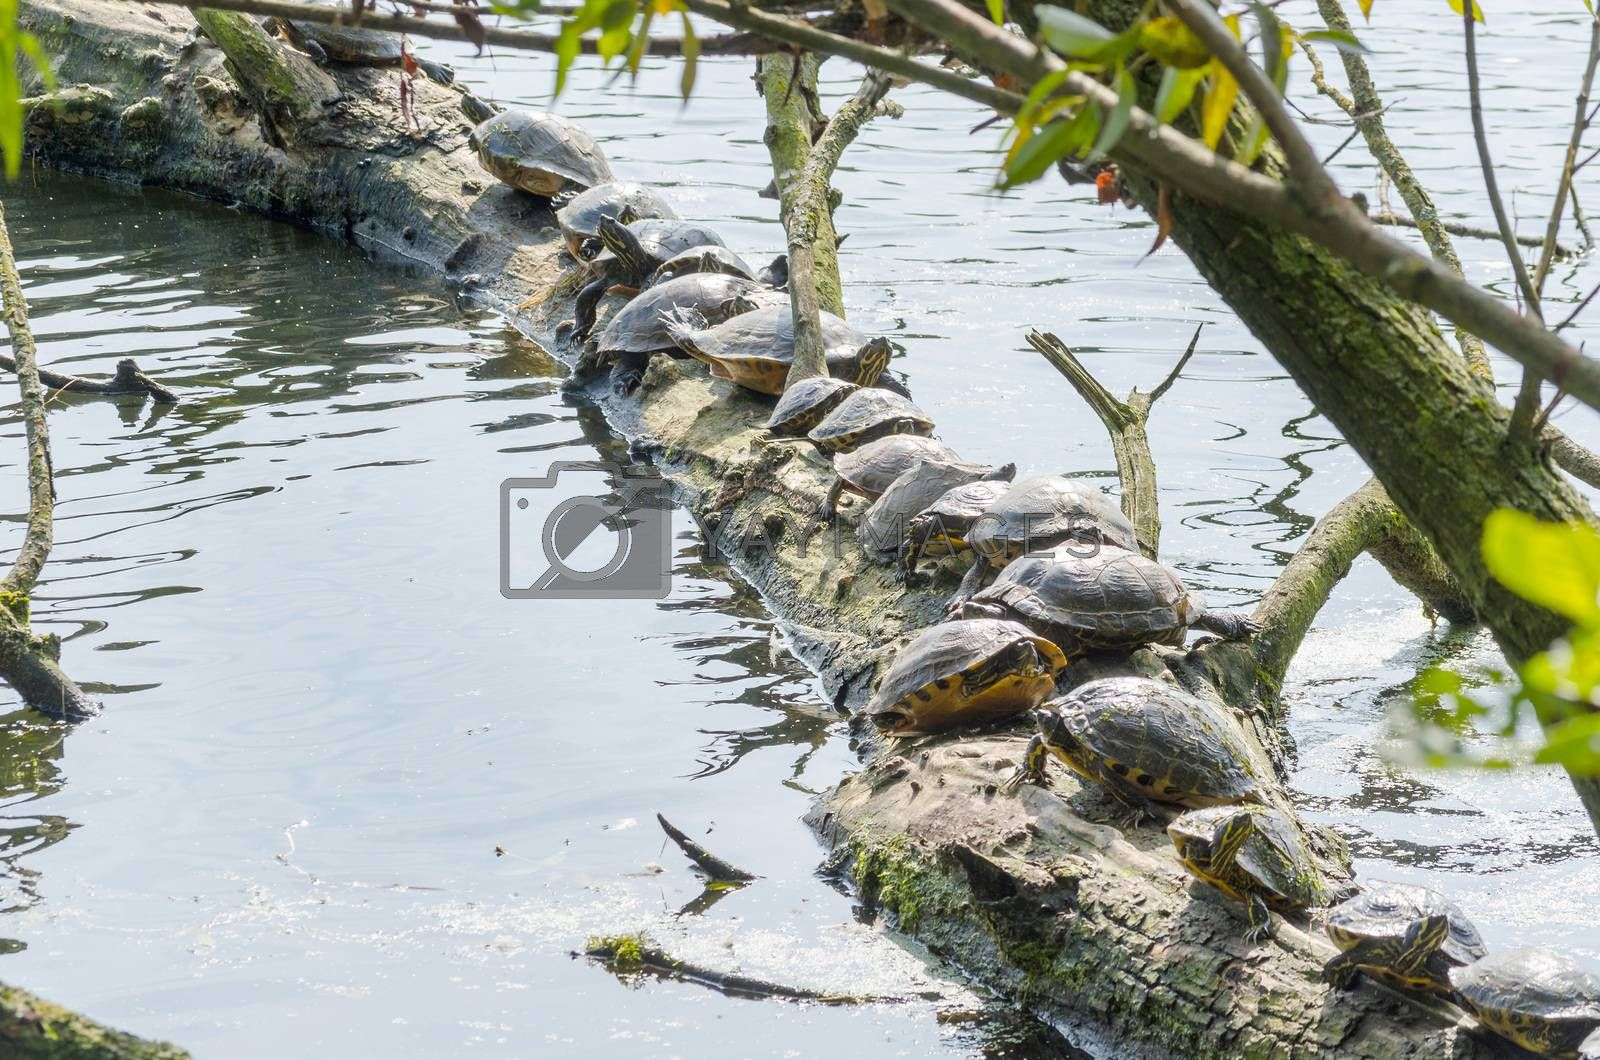 Royalty free image of  Water turtle (Chrysemys picta) by JFsPic